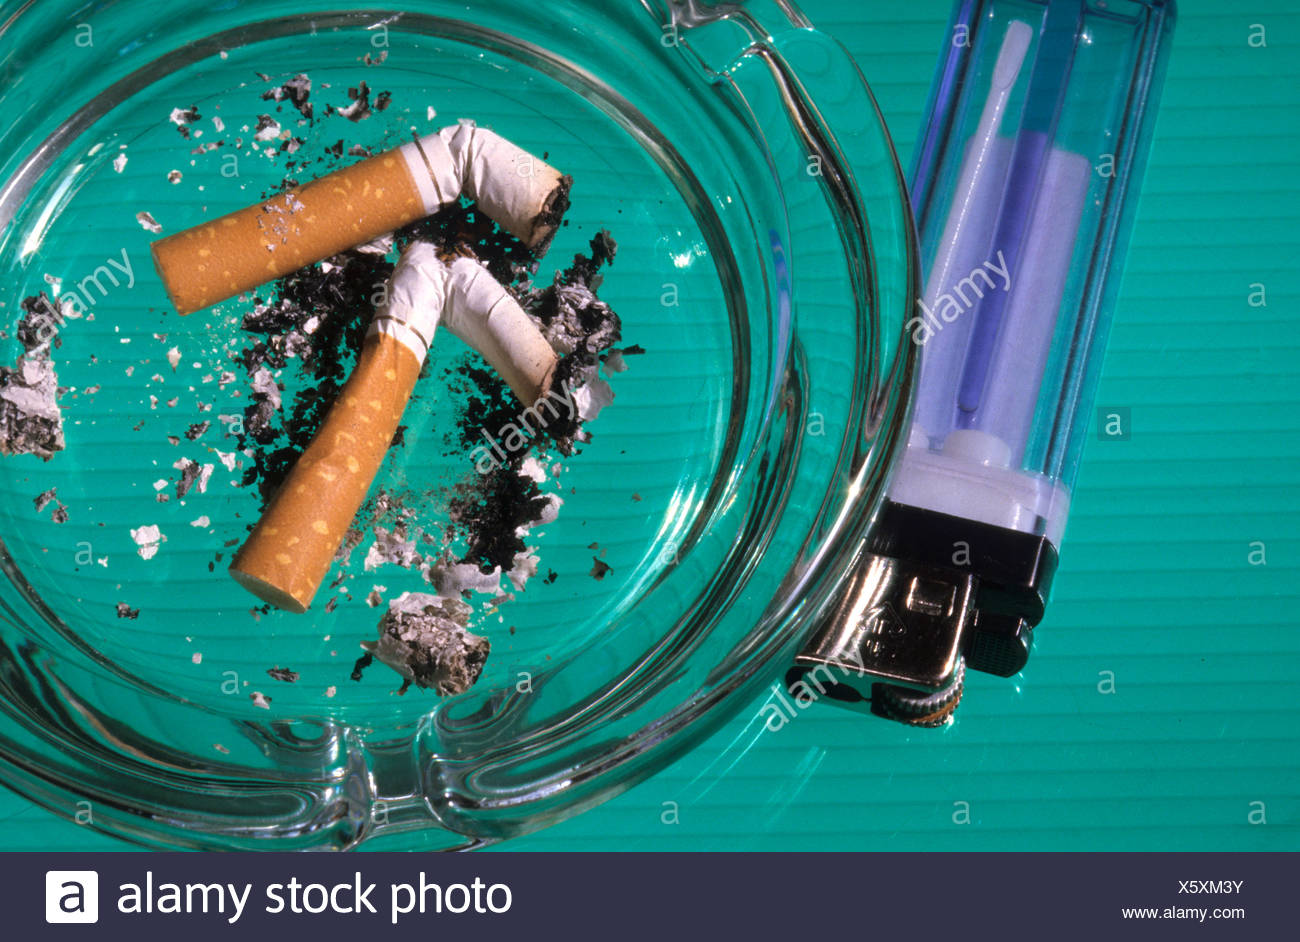 Disposable lighter and ashtray. - Stock Image